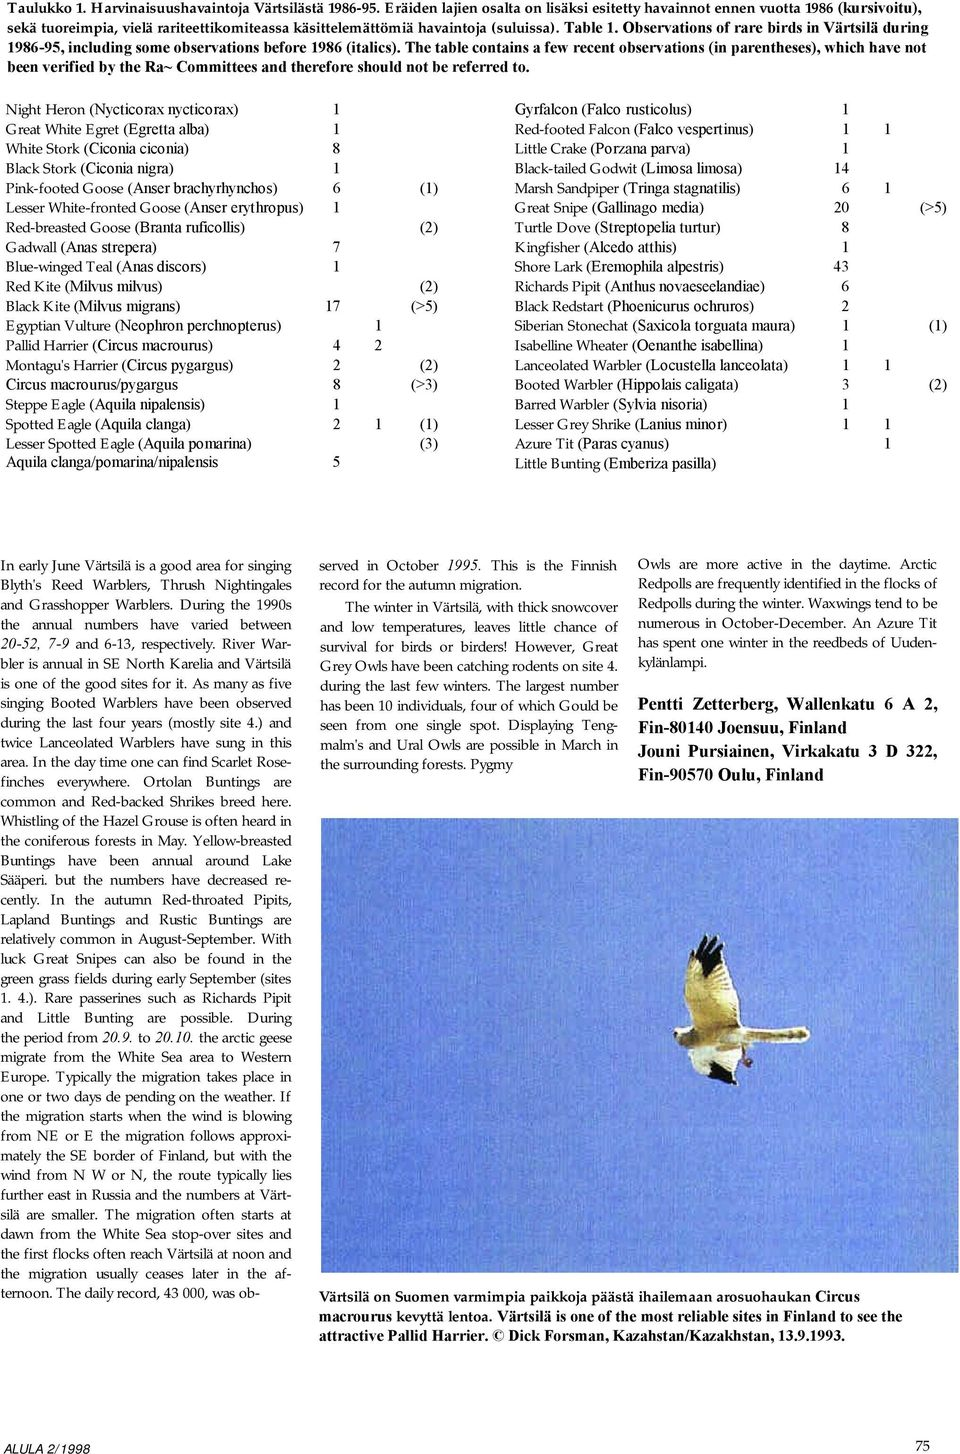 Observations of rare birds in Värtsilä during 1986-95, including some observations before 1986 (italics).